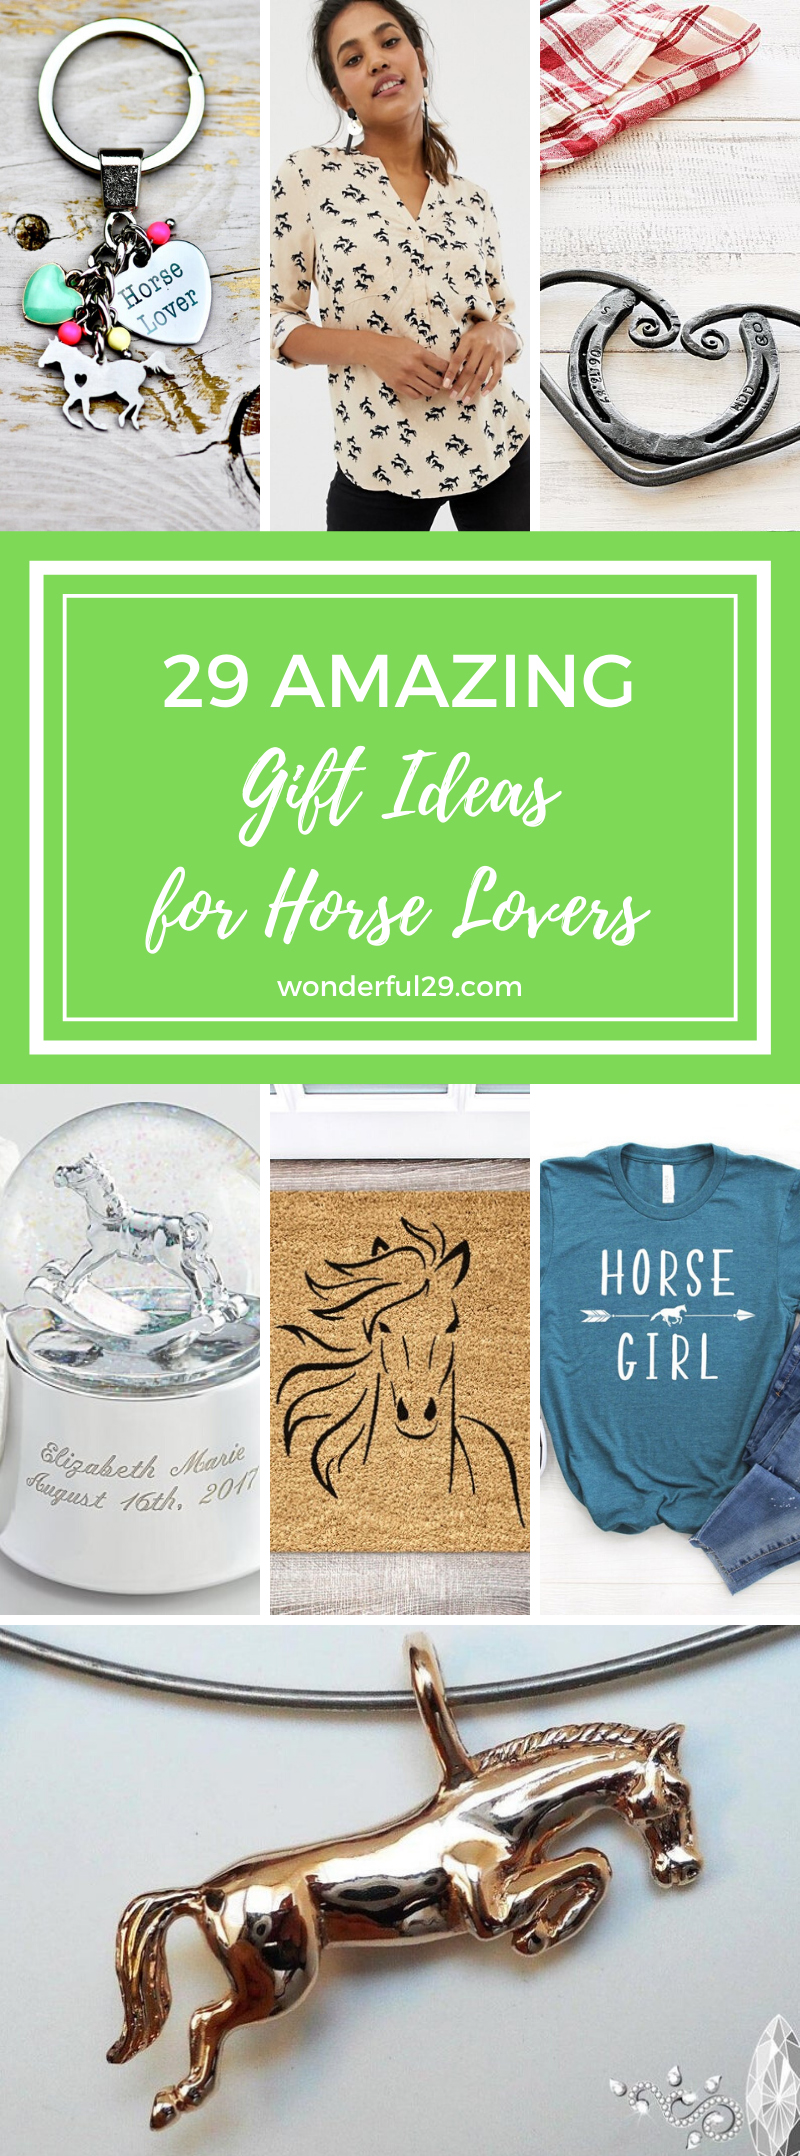 Best Horse Gifts